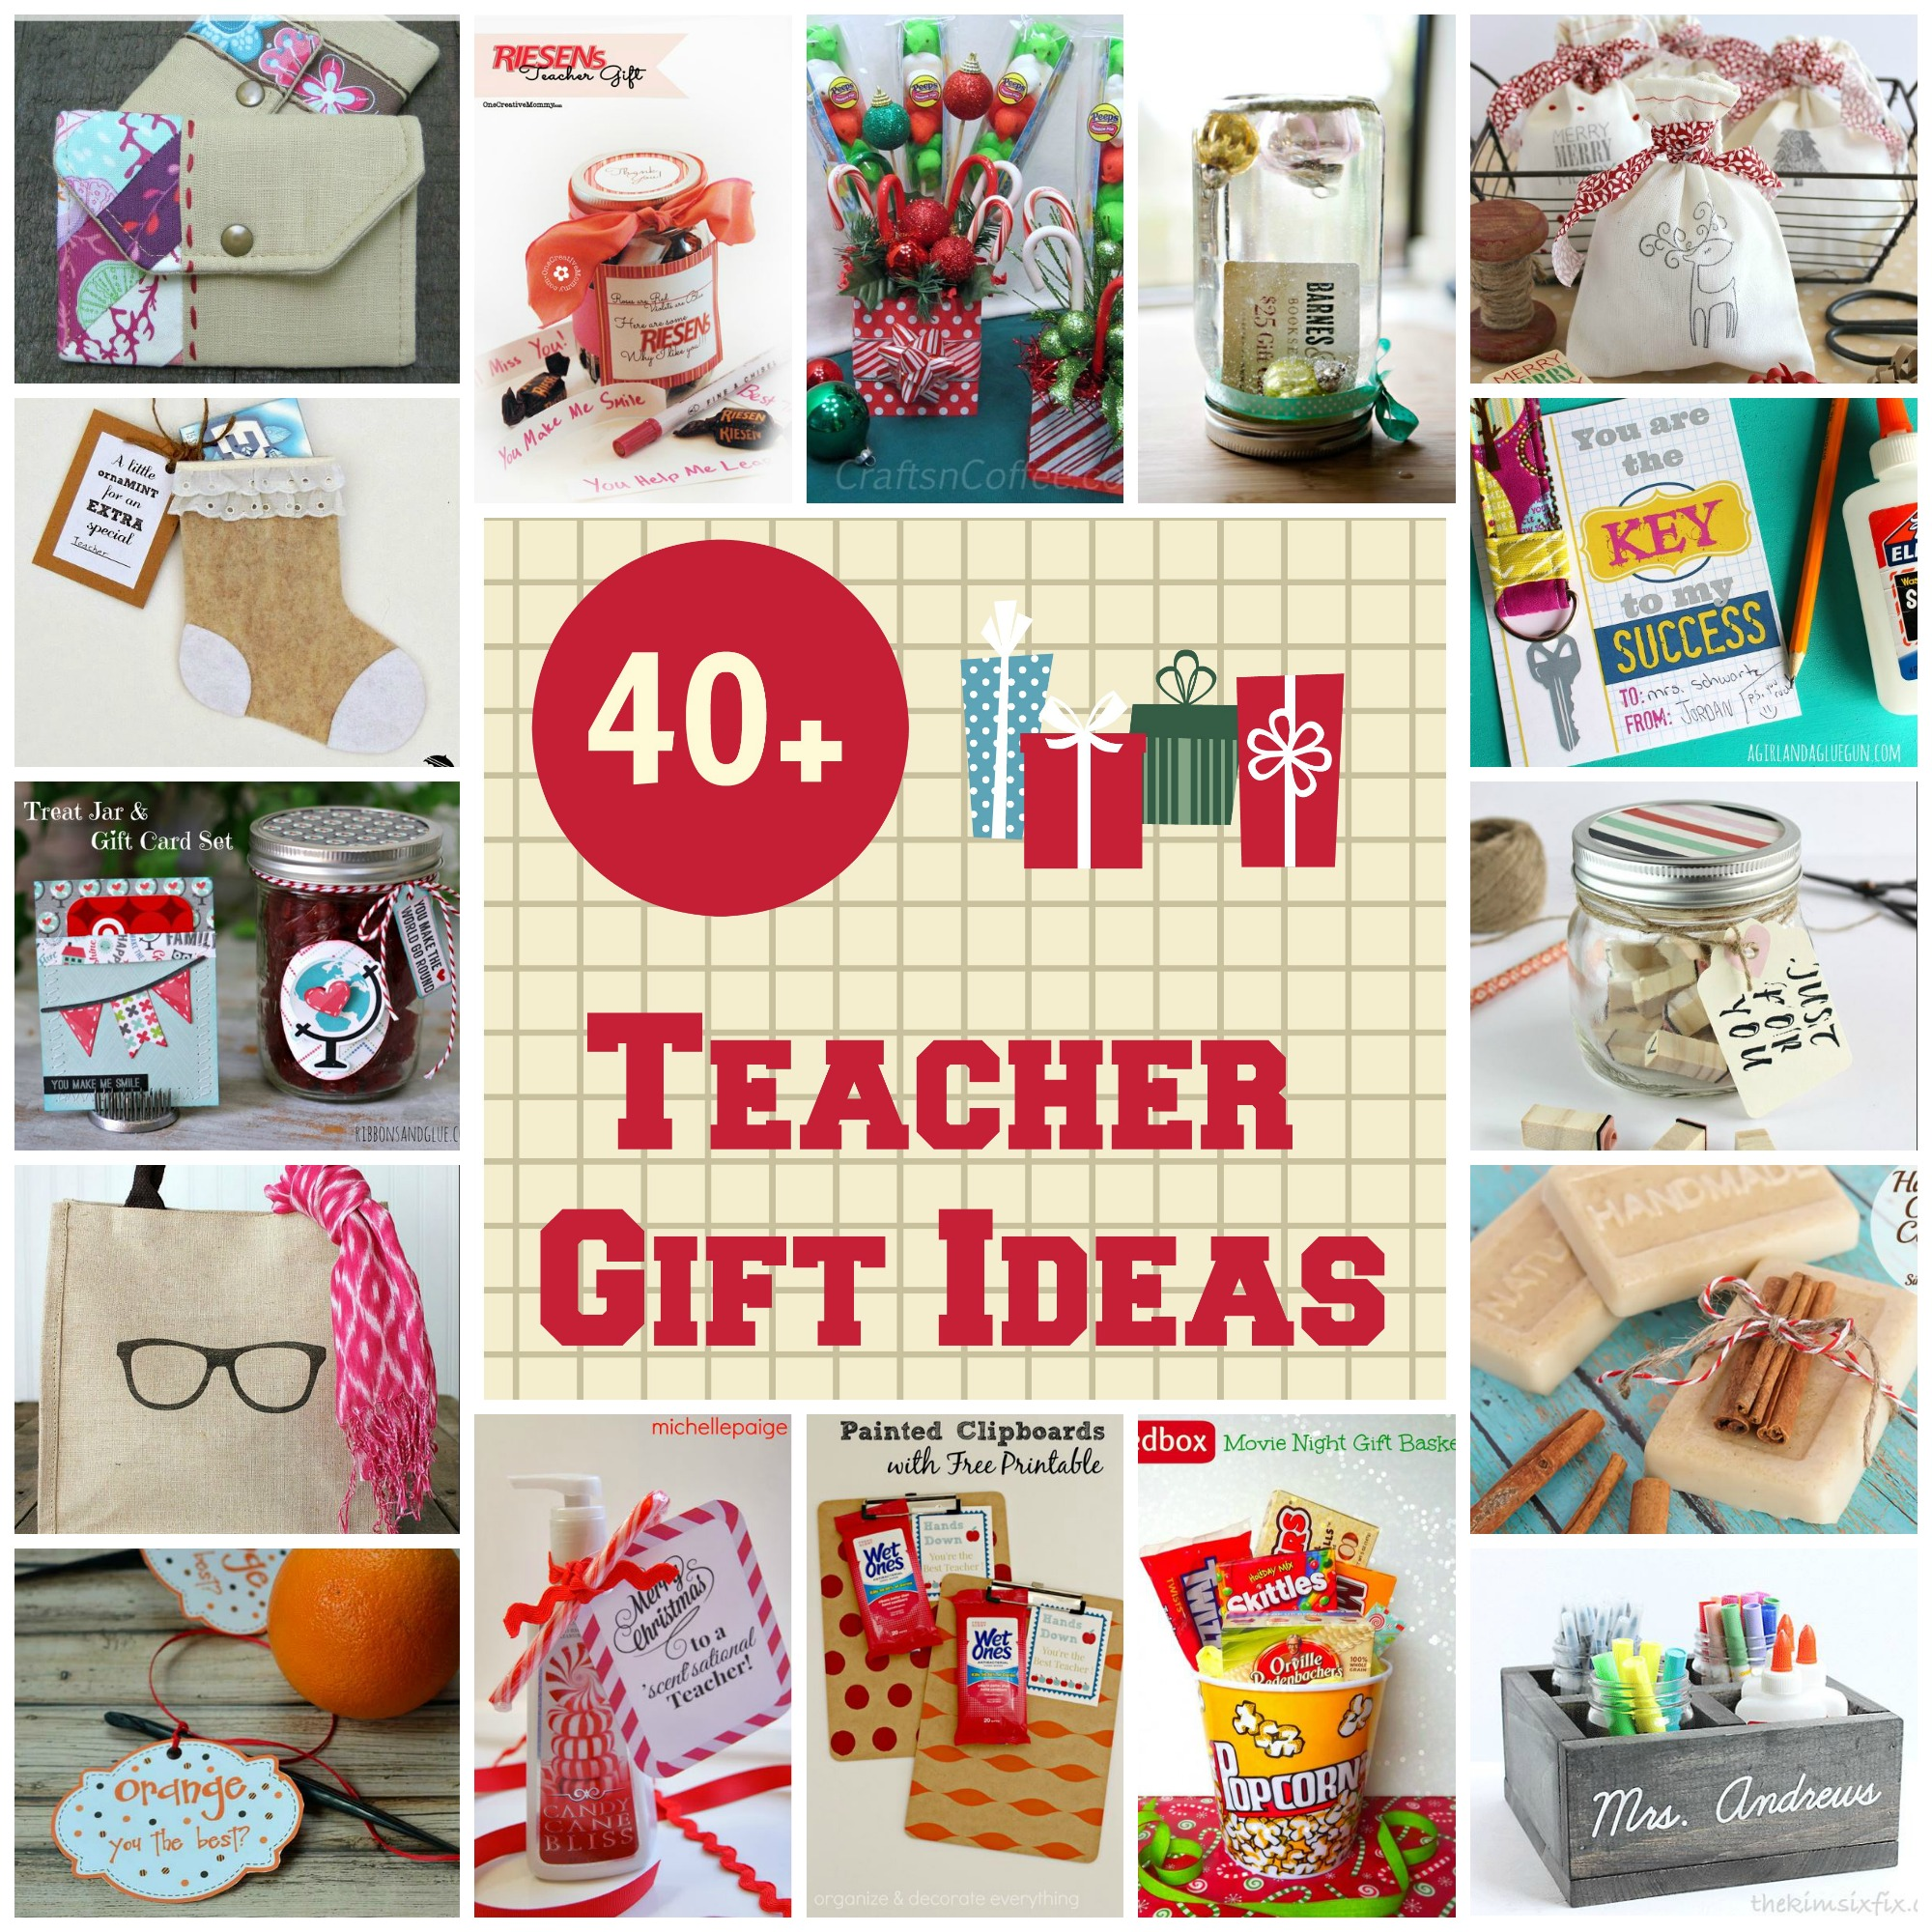 40+ Christmas Gift Ideas for Teachers - Organize and Decorate Everything